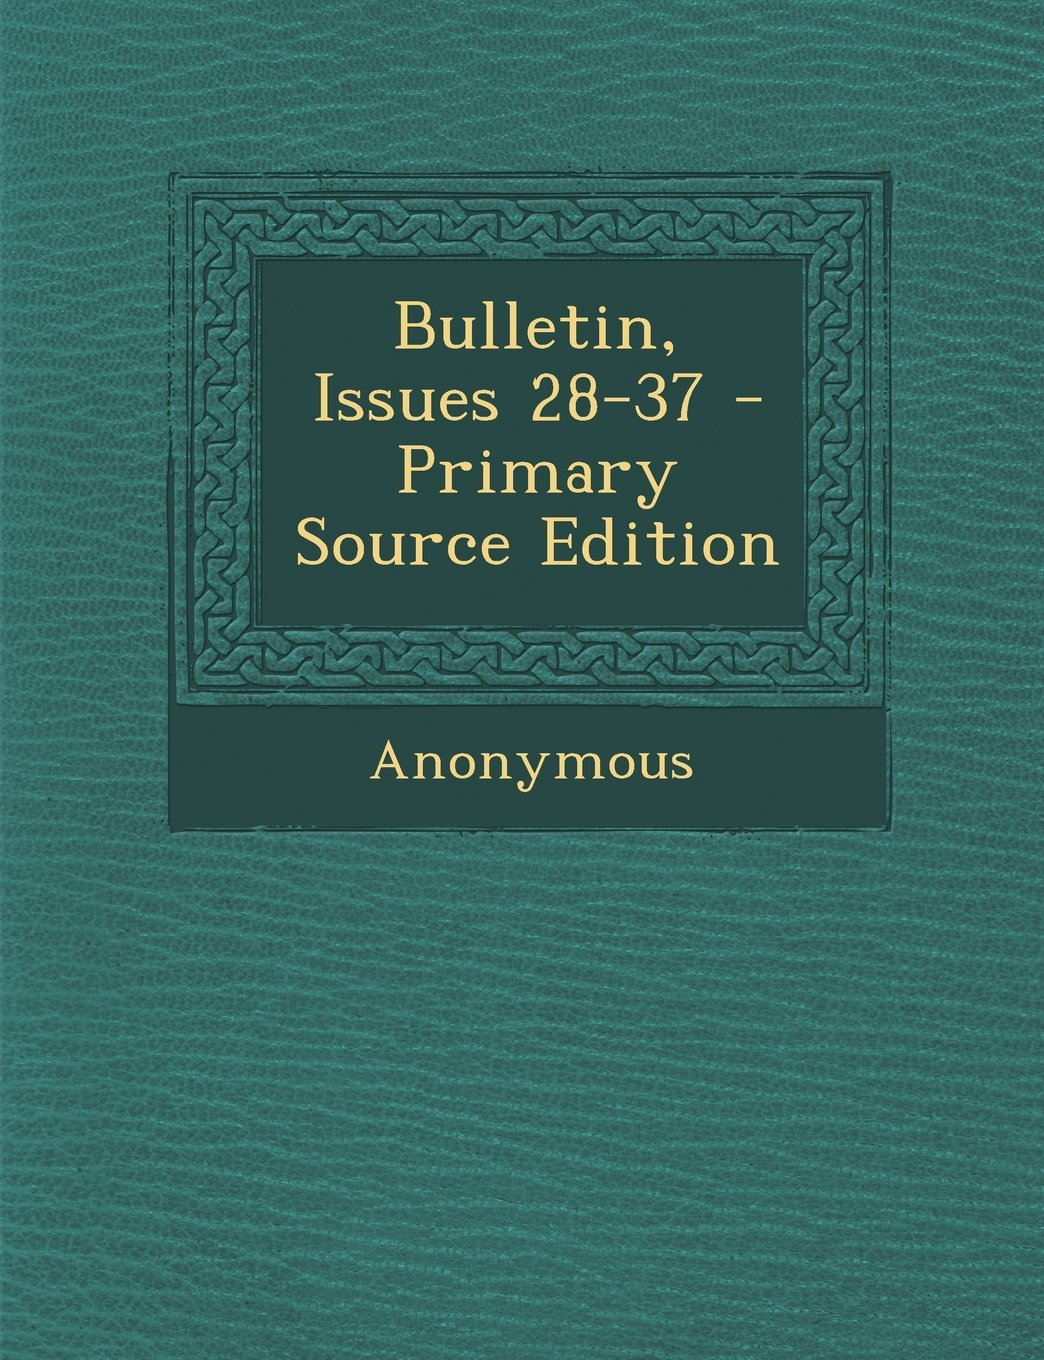 Read Online Bulletin, Issues 28-37 - Primary Source Edition PDF